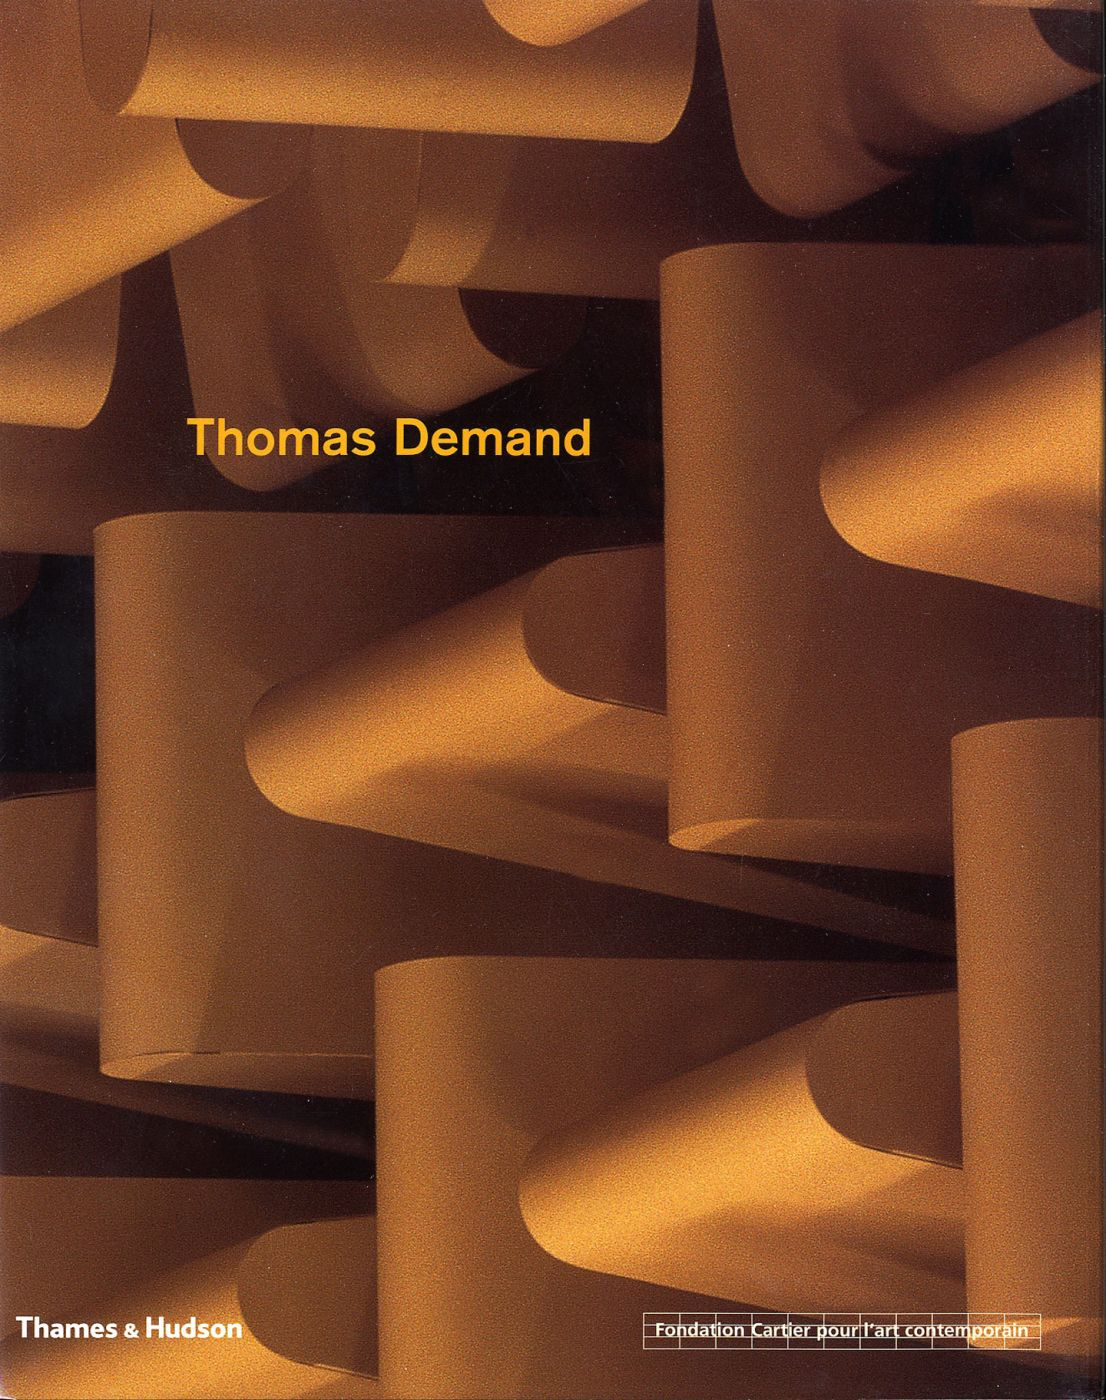 Thomas Demand (Fondation Cartier pour l'art contemporain, English Edition)